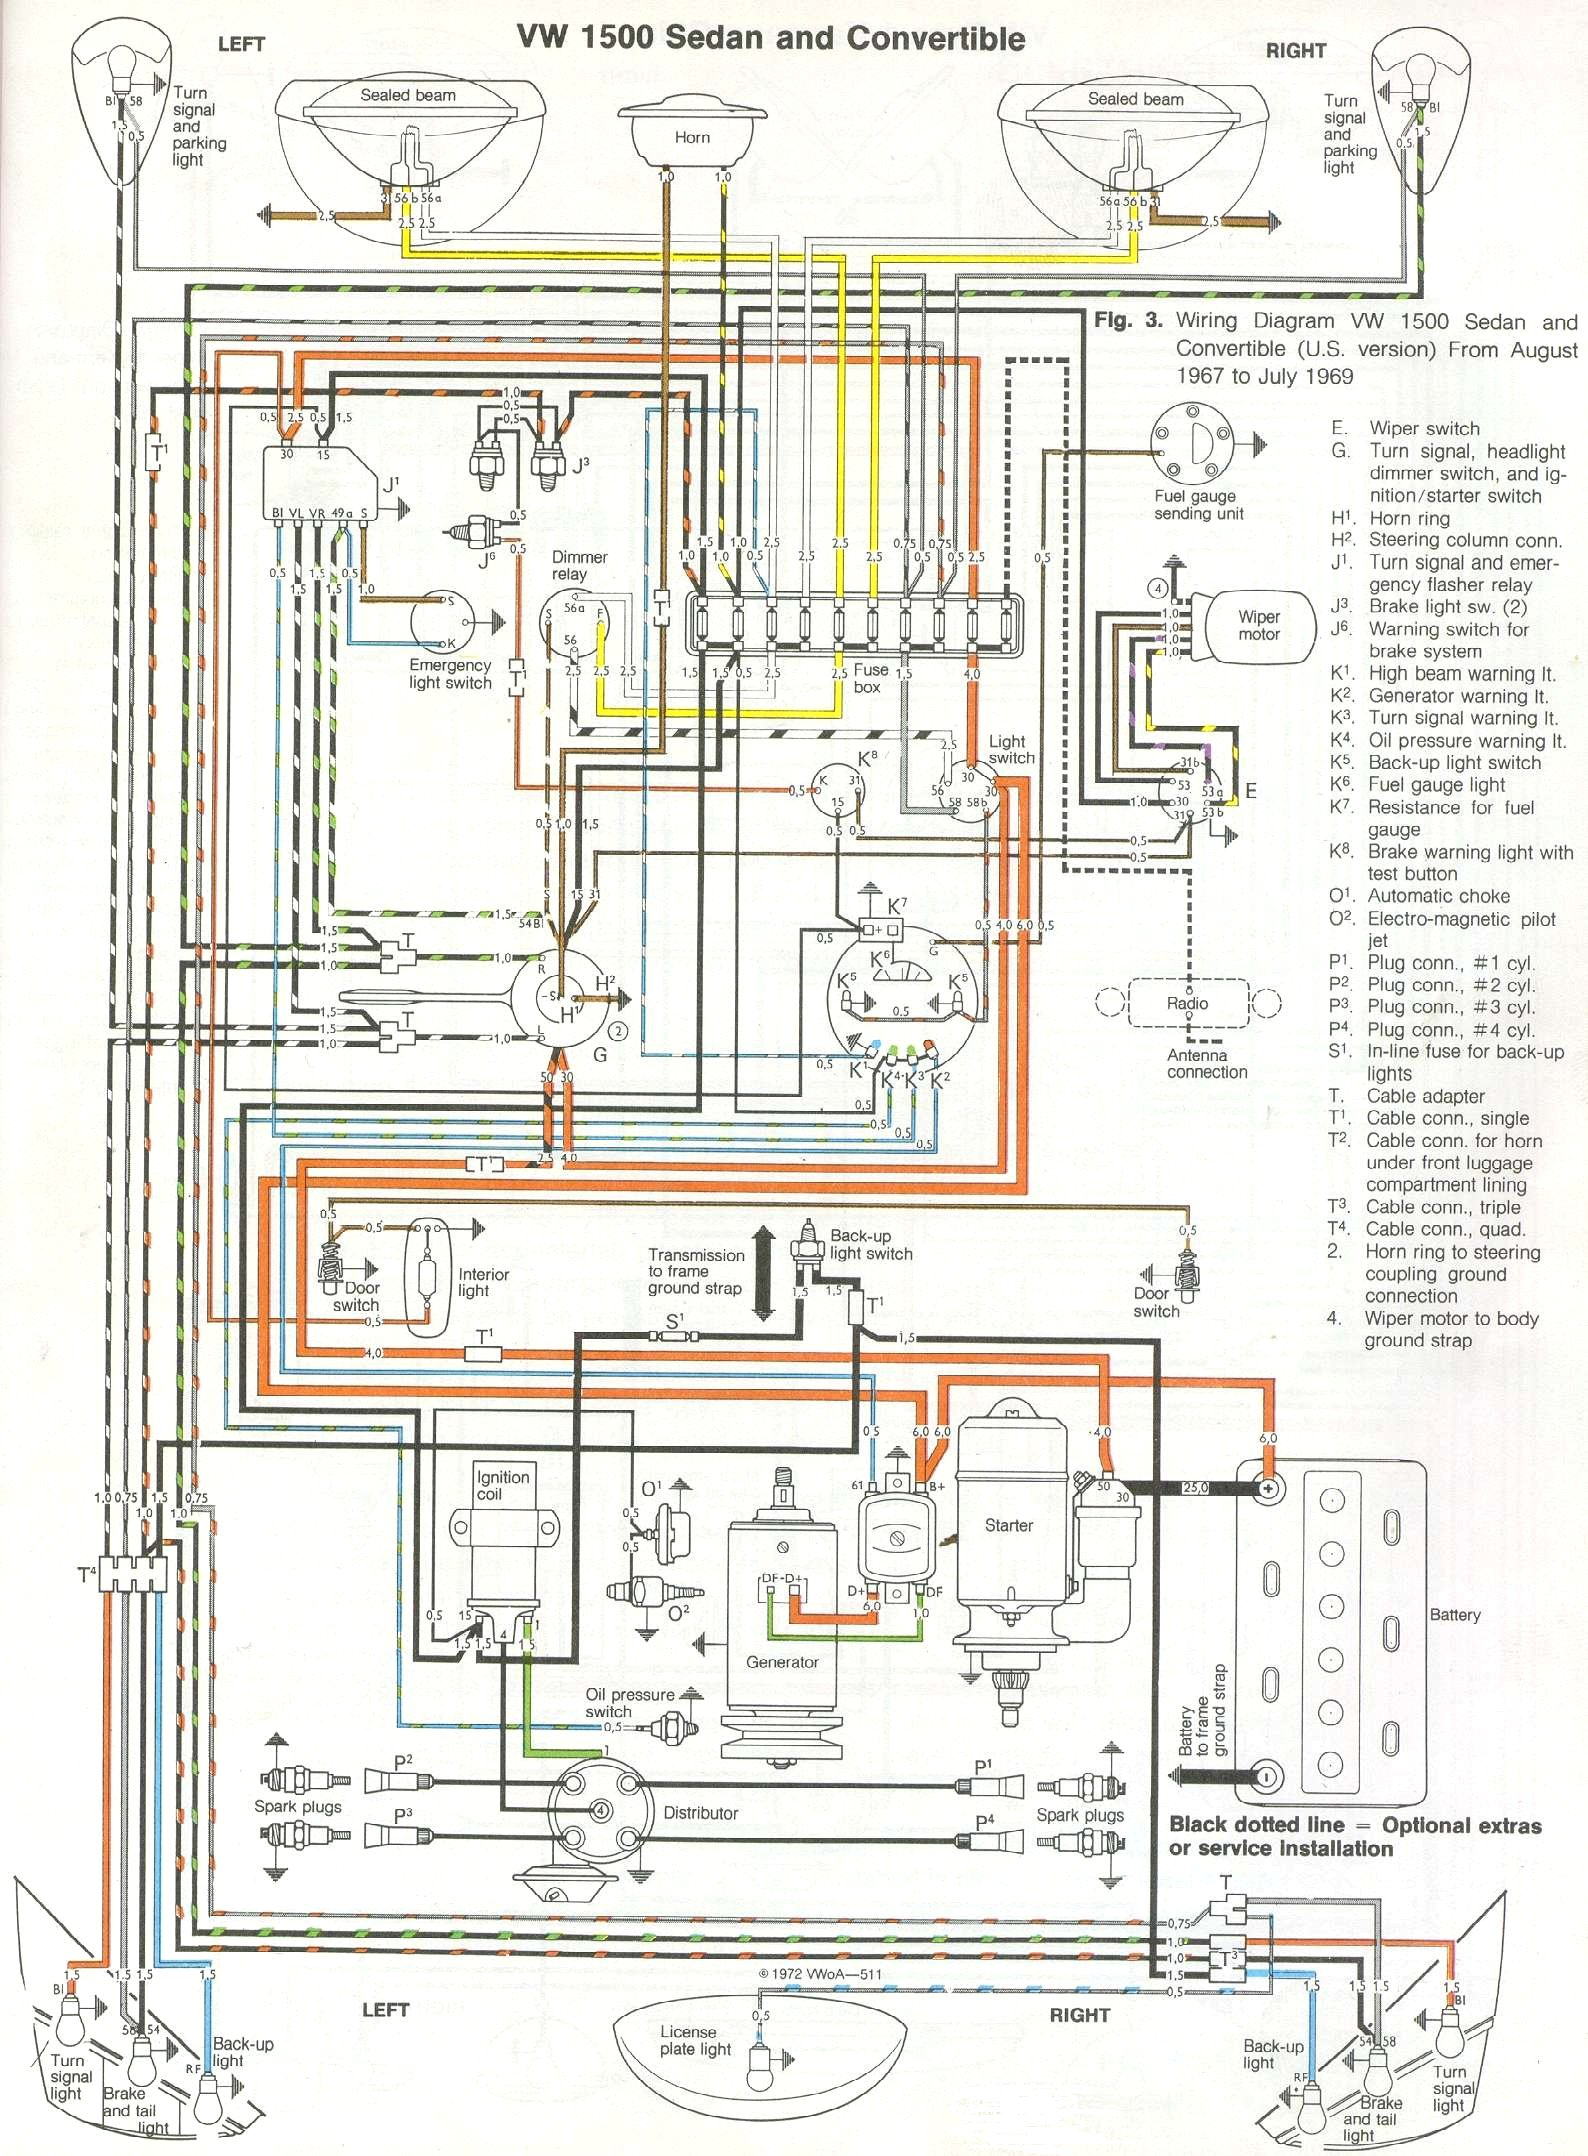 bug_6869 thesamba com type 1 wiring diagrams find wiring diagram for 87 ford f 150 at honlapkeszites.co